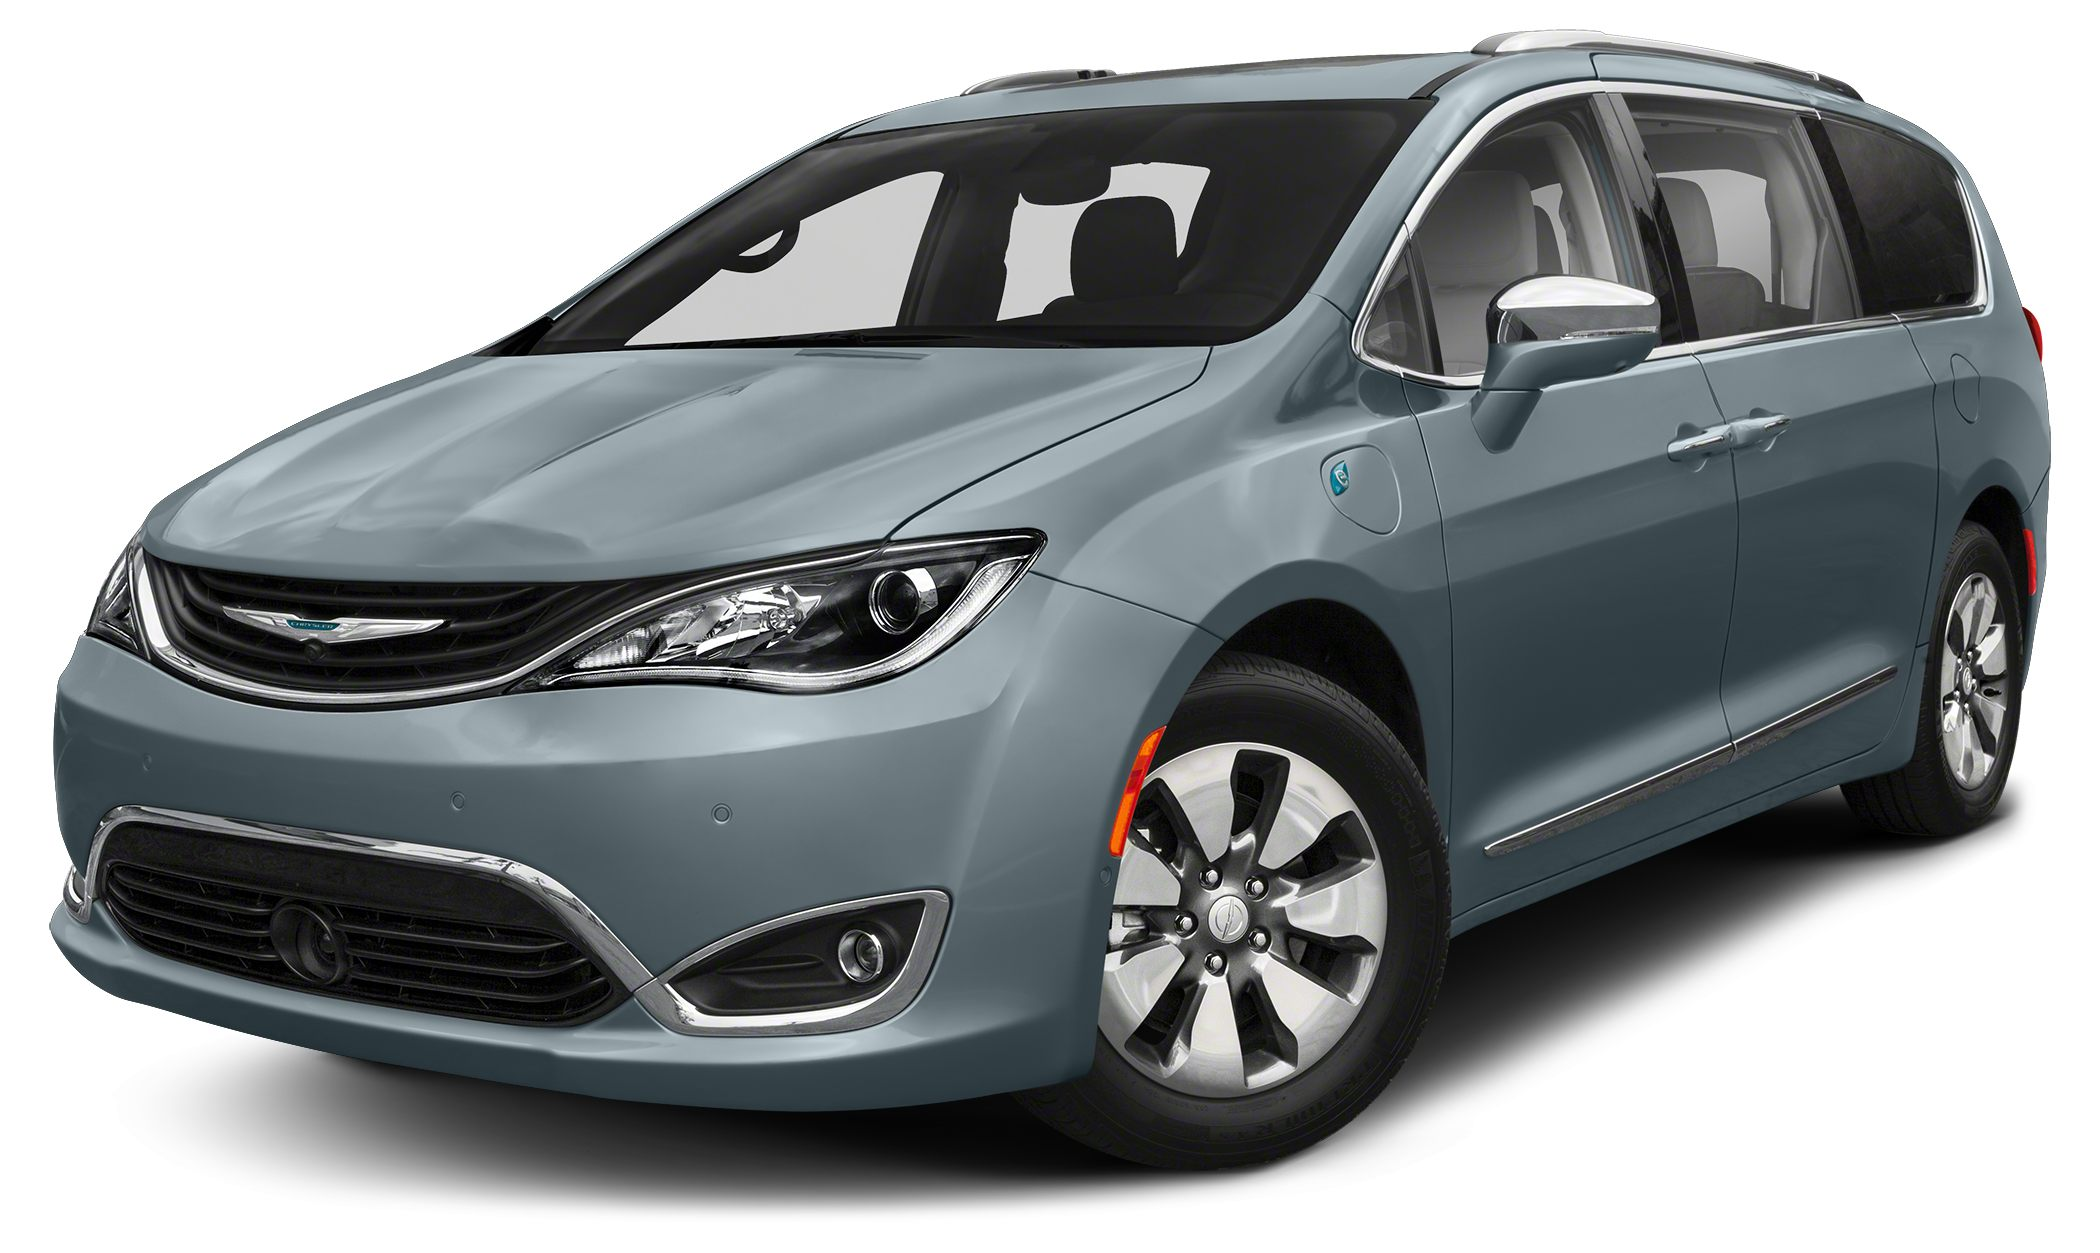 2018 Chrysler Pacifica Hybrid Limited Miles 0Color Billet Silver Clearcoat Metallic Stock R236